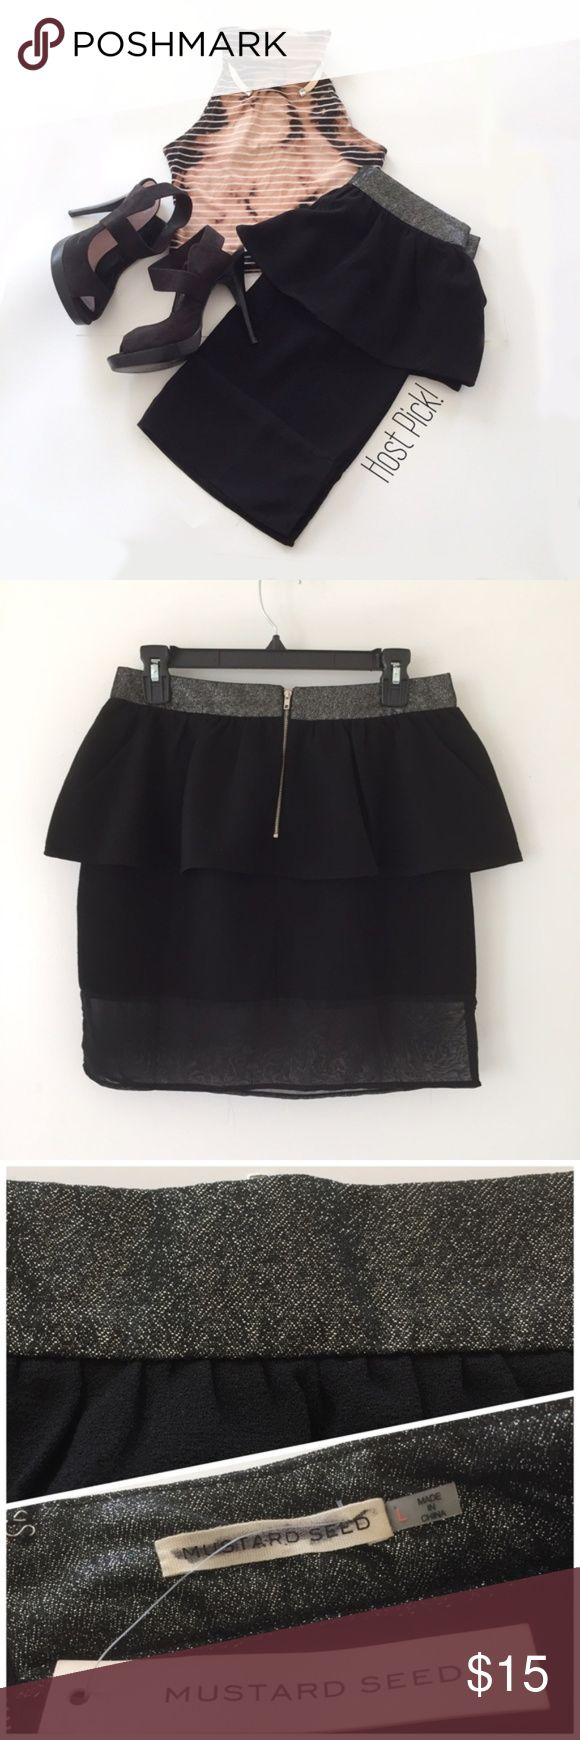 Black Peplum Skirt by Mustard Seed Black peplum skirt with sheer panel by Mustard Seed | Silver shimmery waistband | Tag still attached but inside tag crossed out as pictured | Size L Mustard Seed Skirts Mini